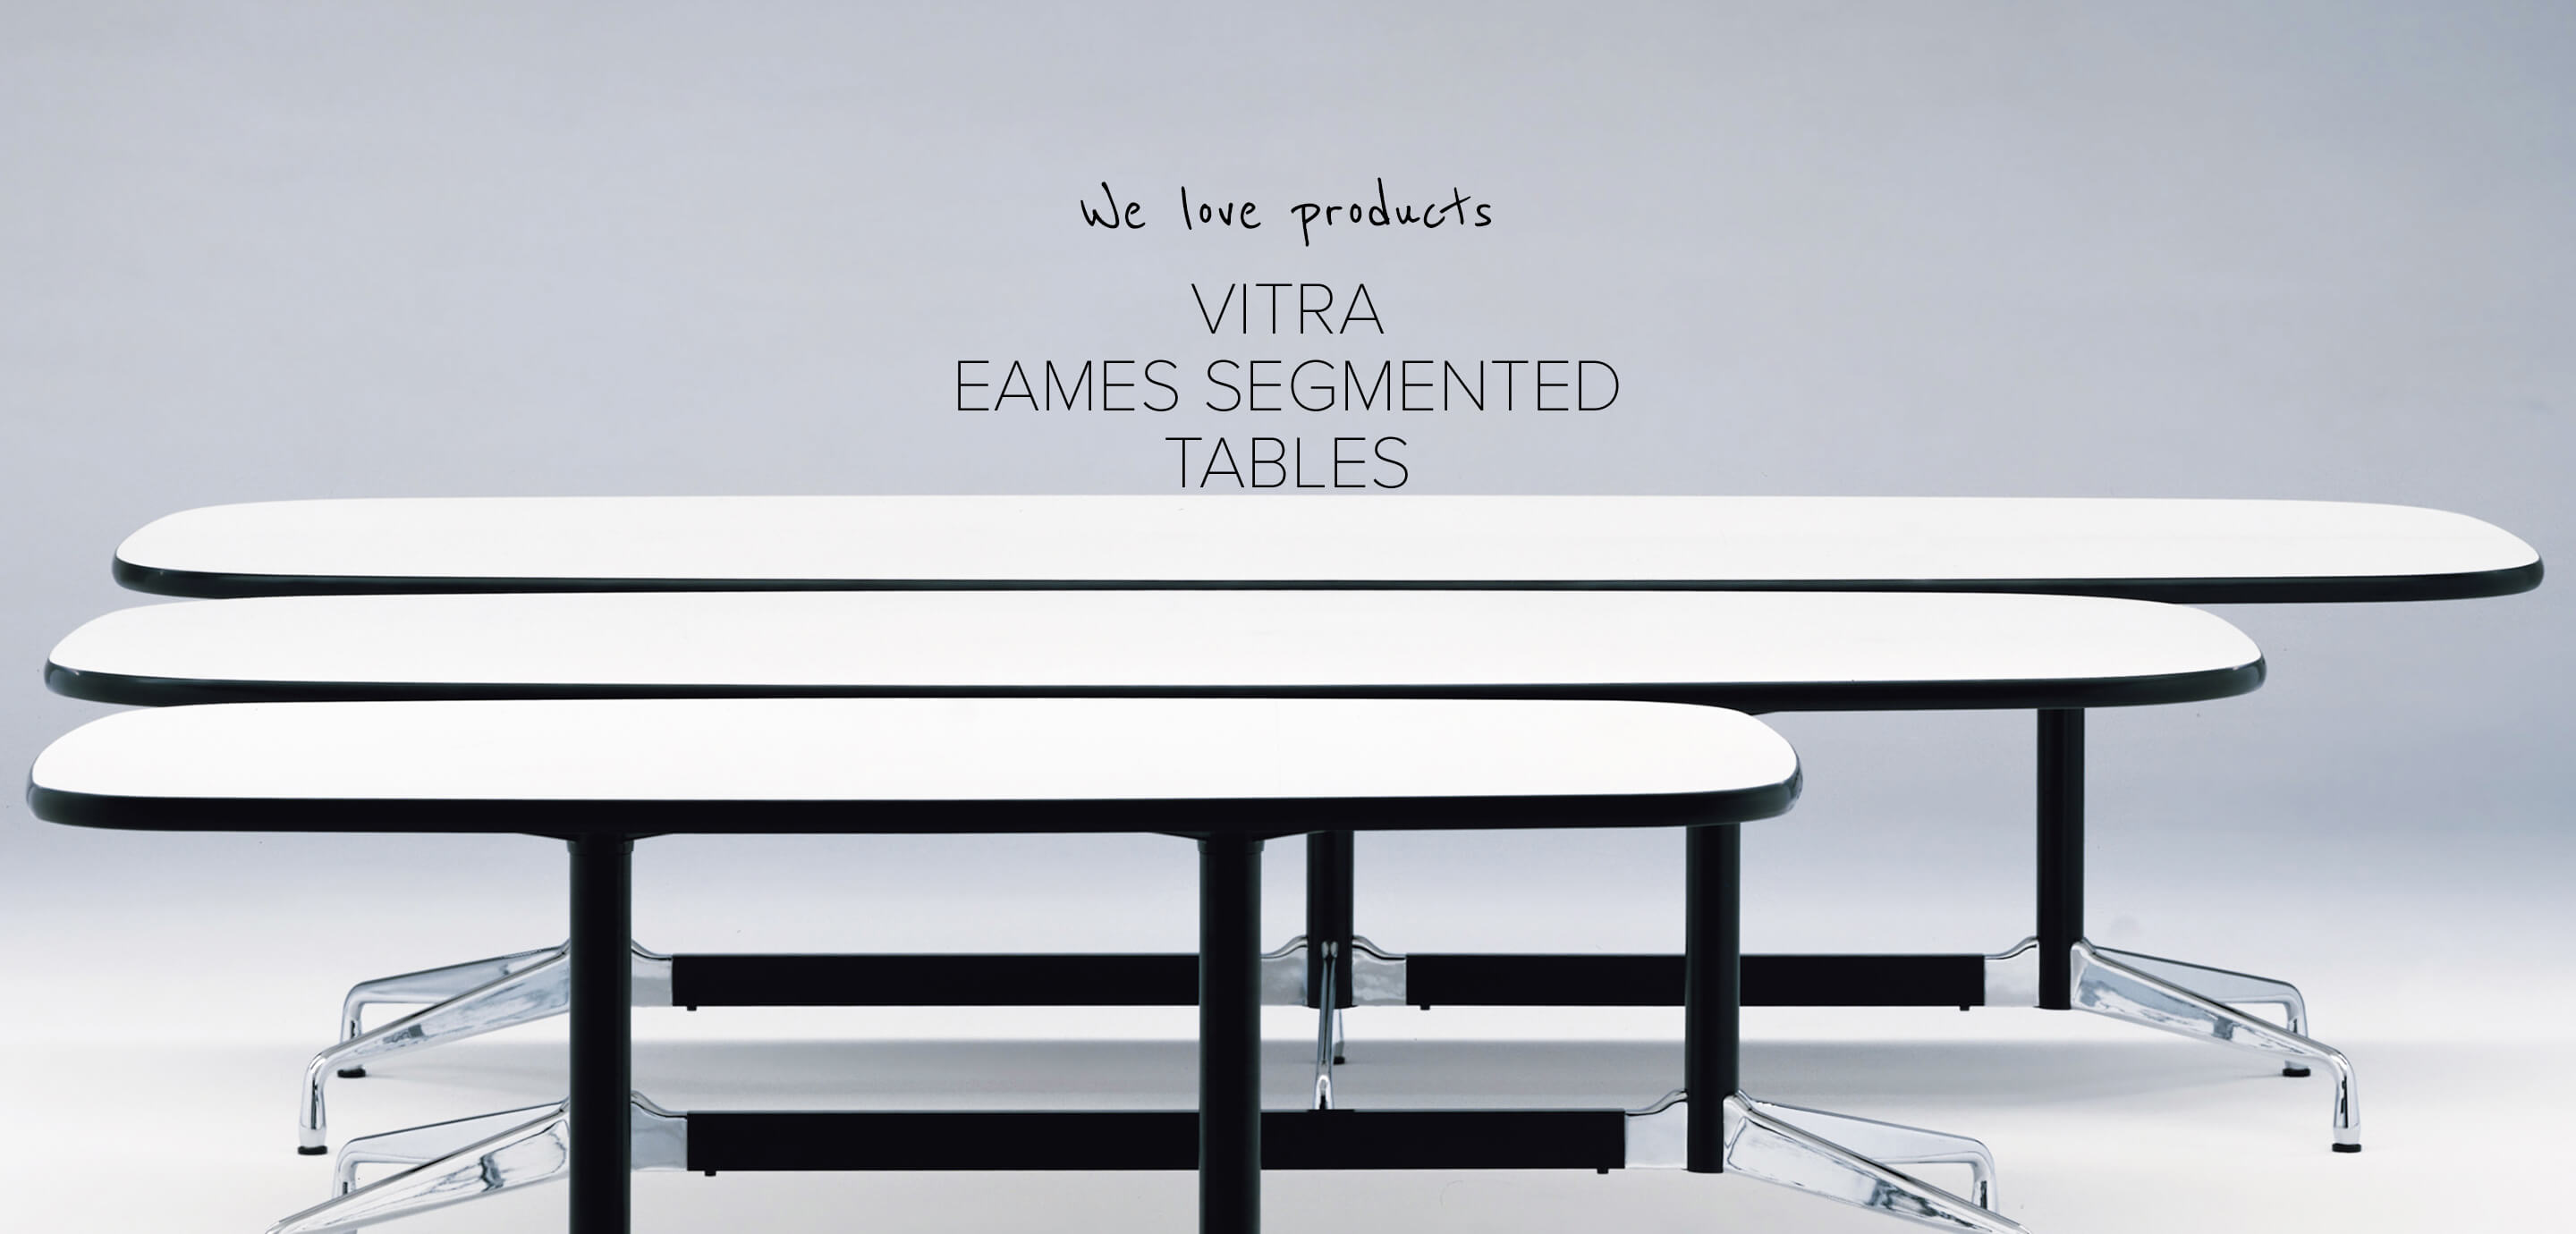 Vitra Eames Segmented Tables